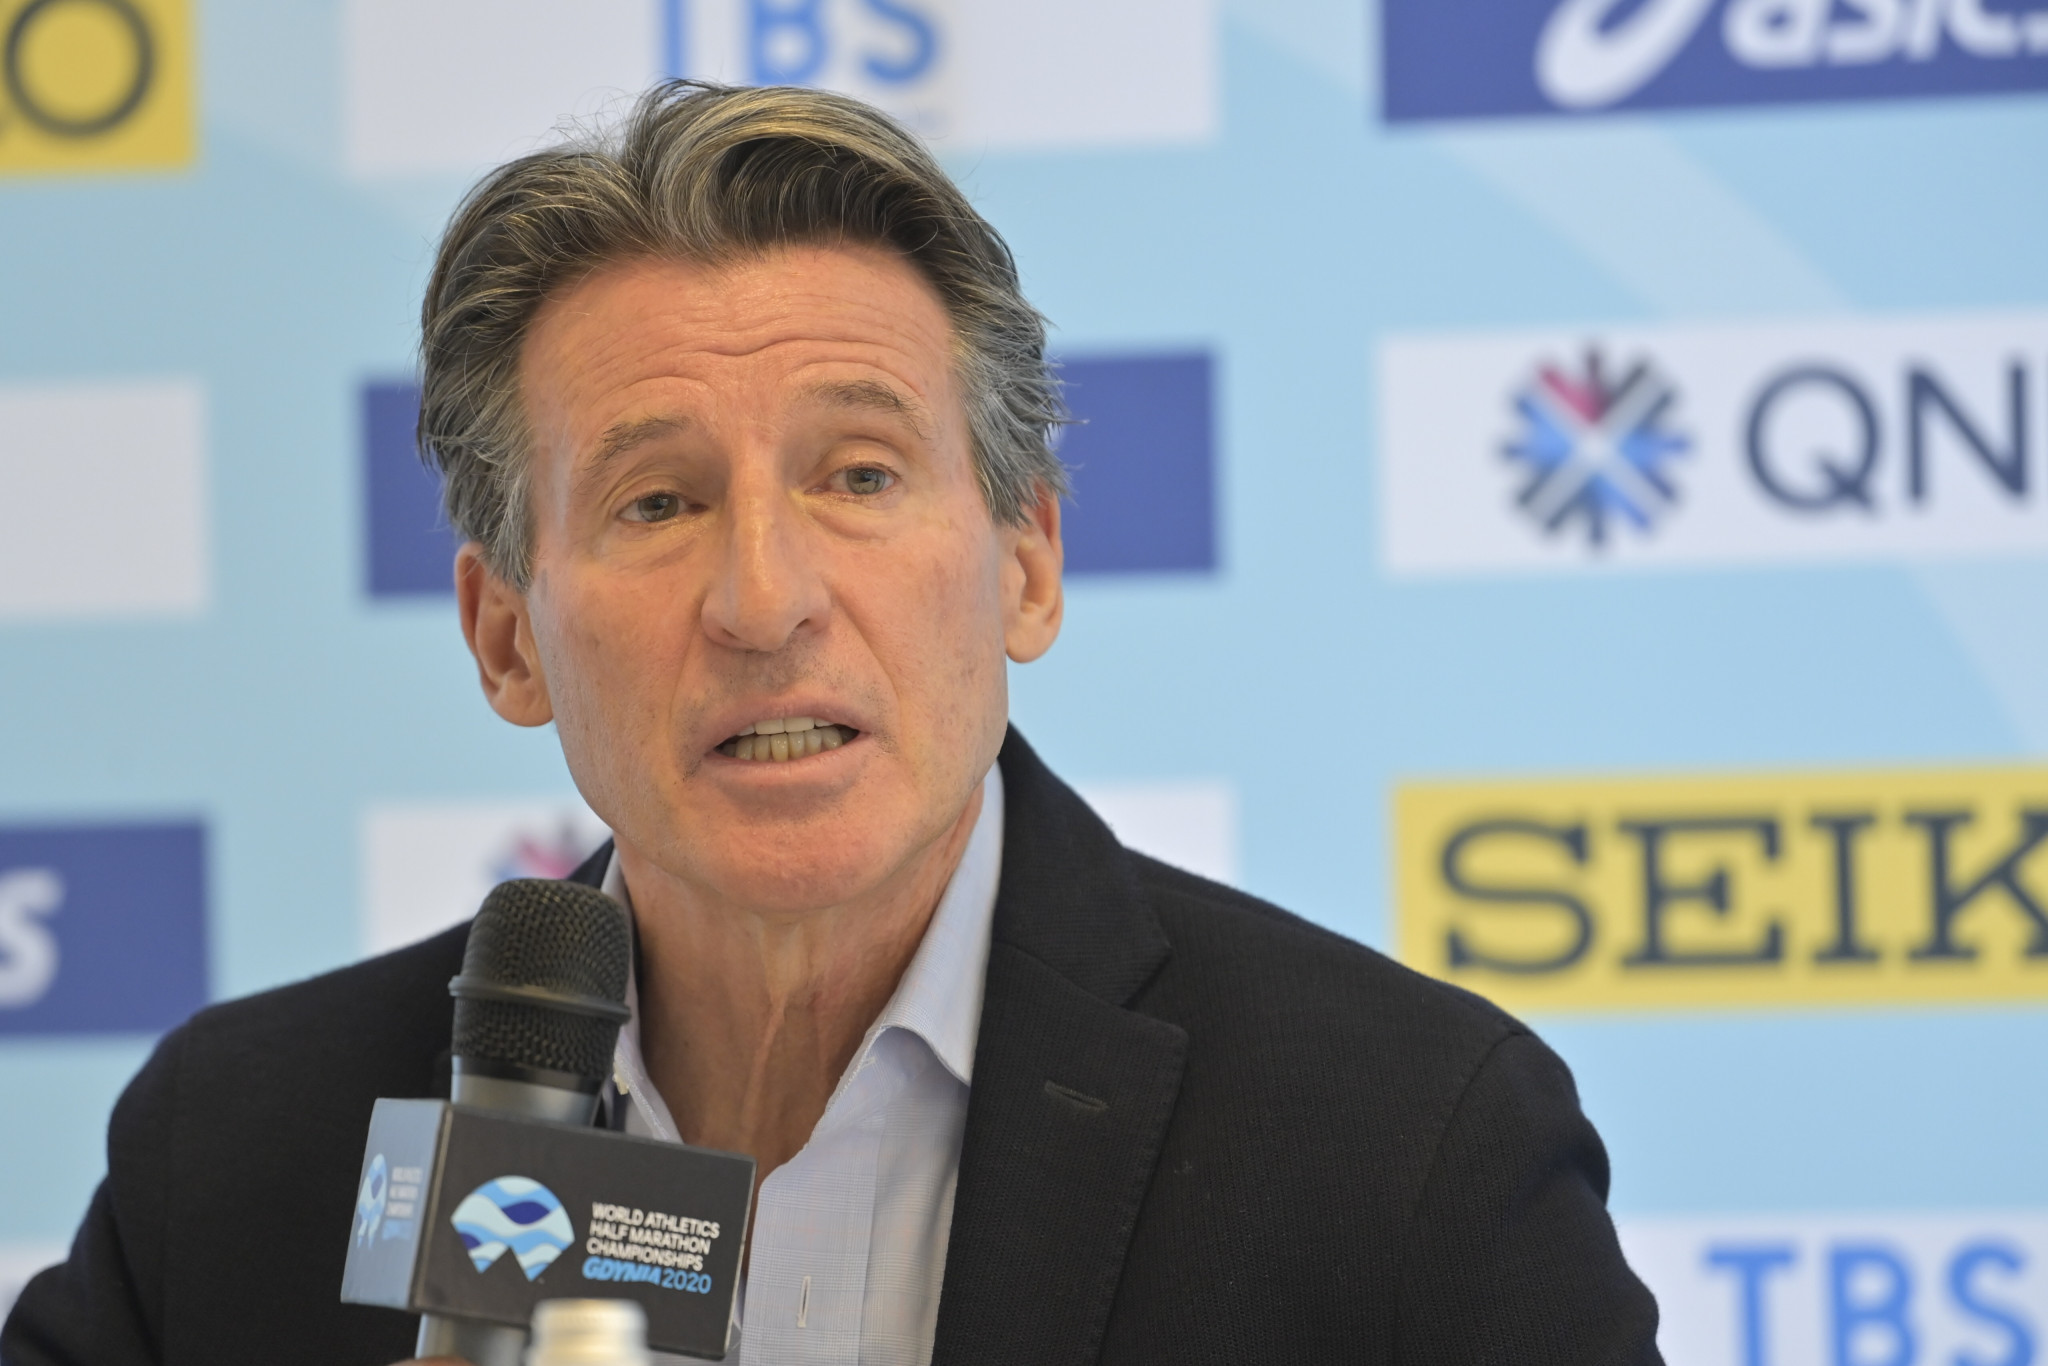 """Coe warns Italy not to be on """"wrong side of history"""" following Schwazer doping clearance"""